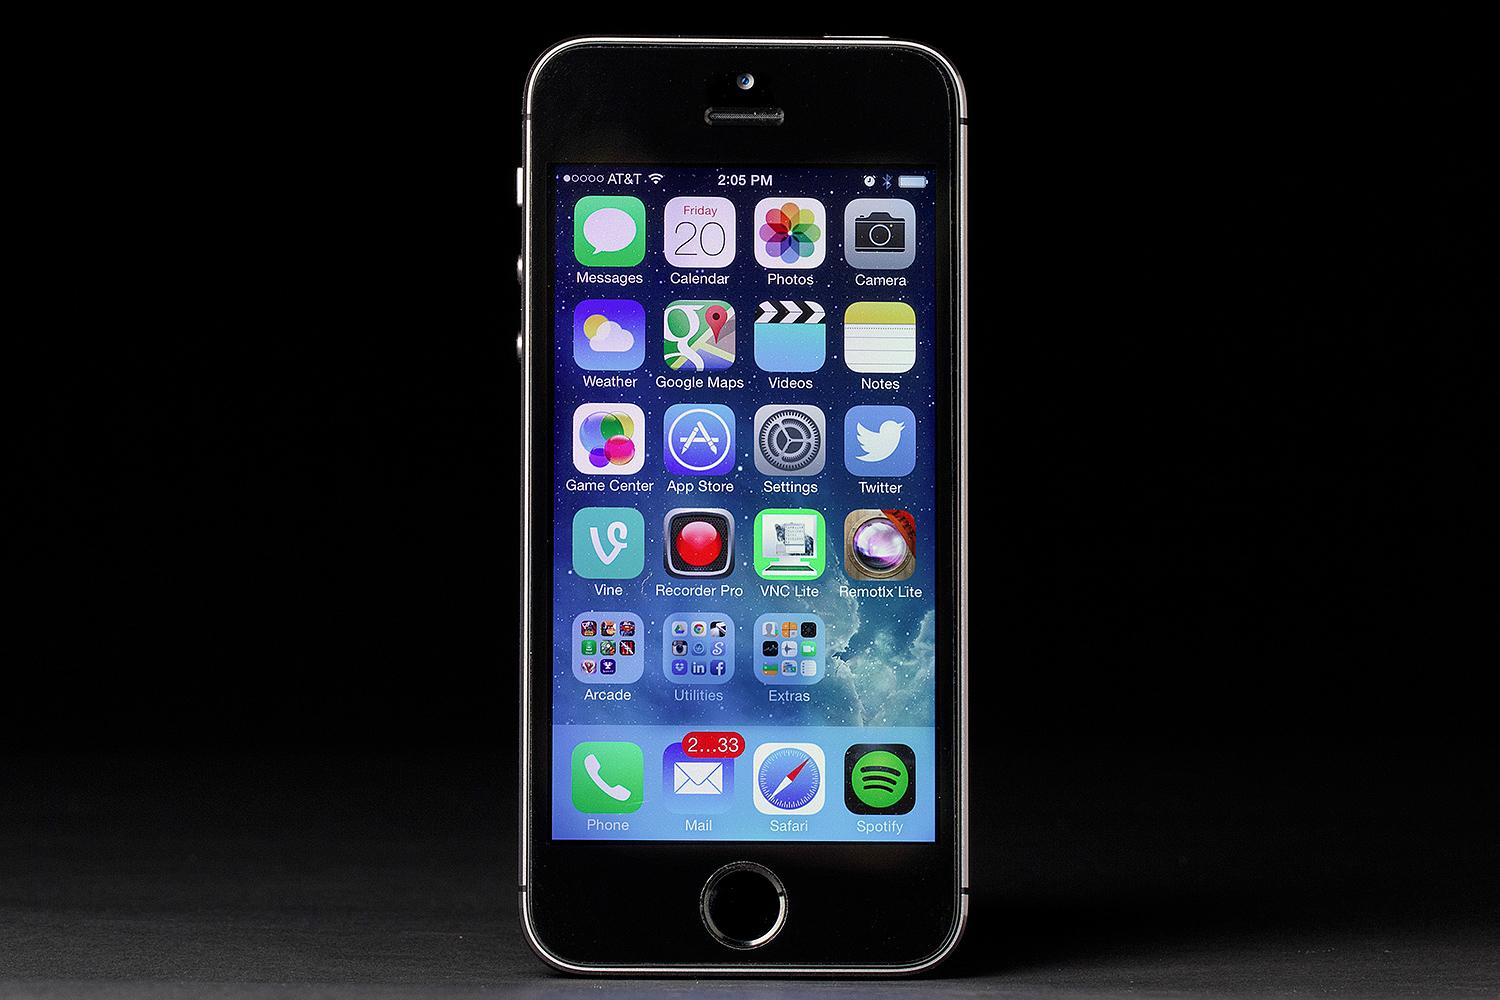 apple-iphone-5s-screen-front-ios-7